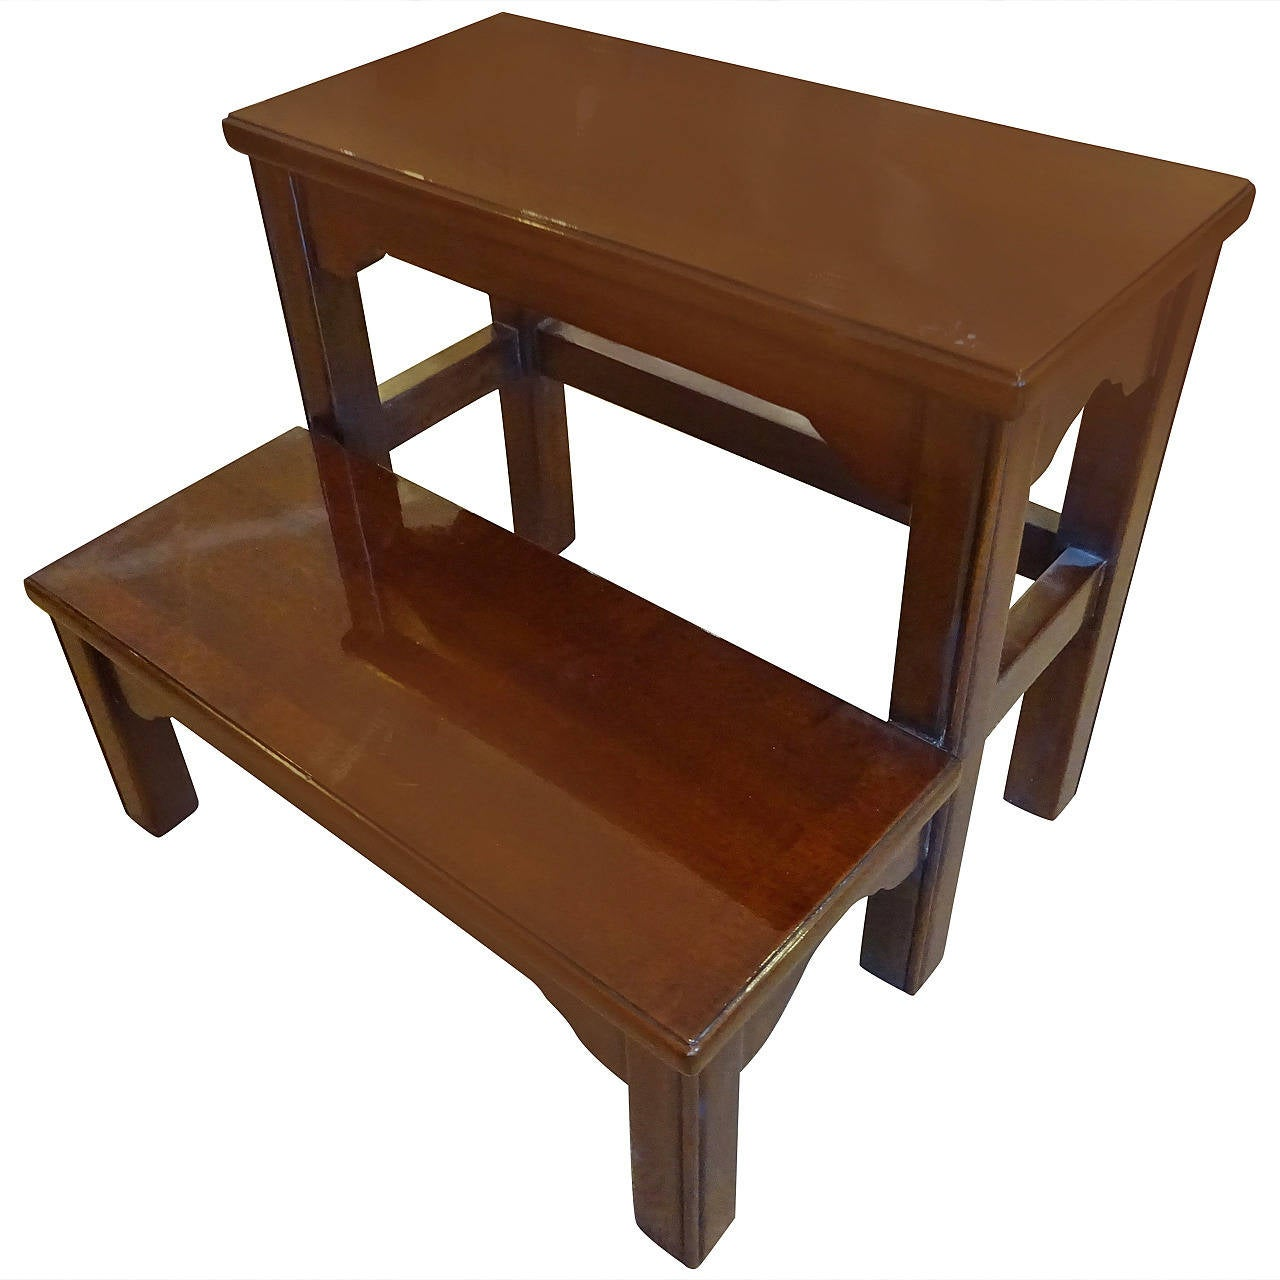 Two-step stool, 1990s